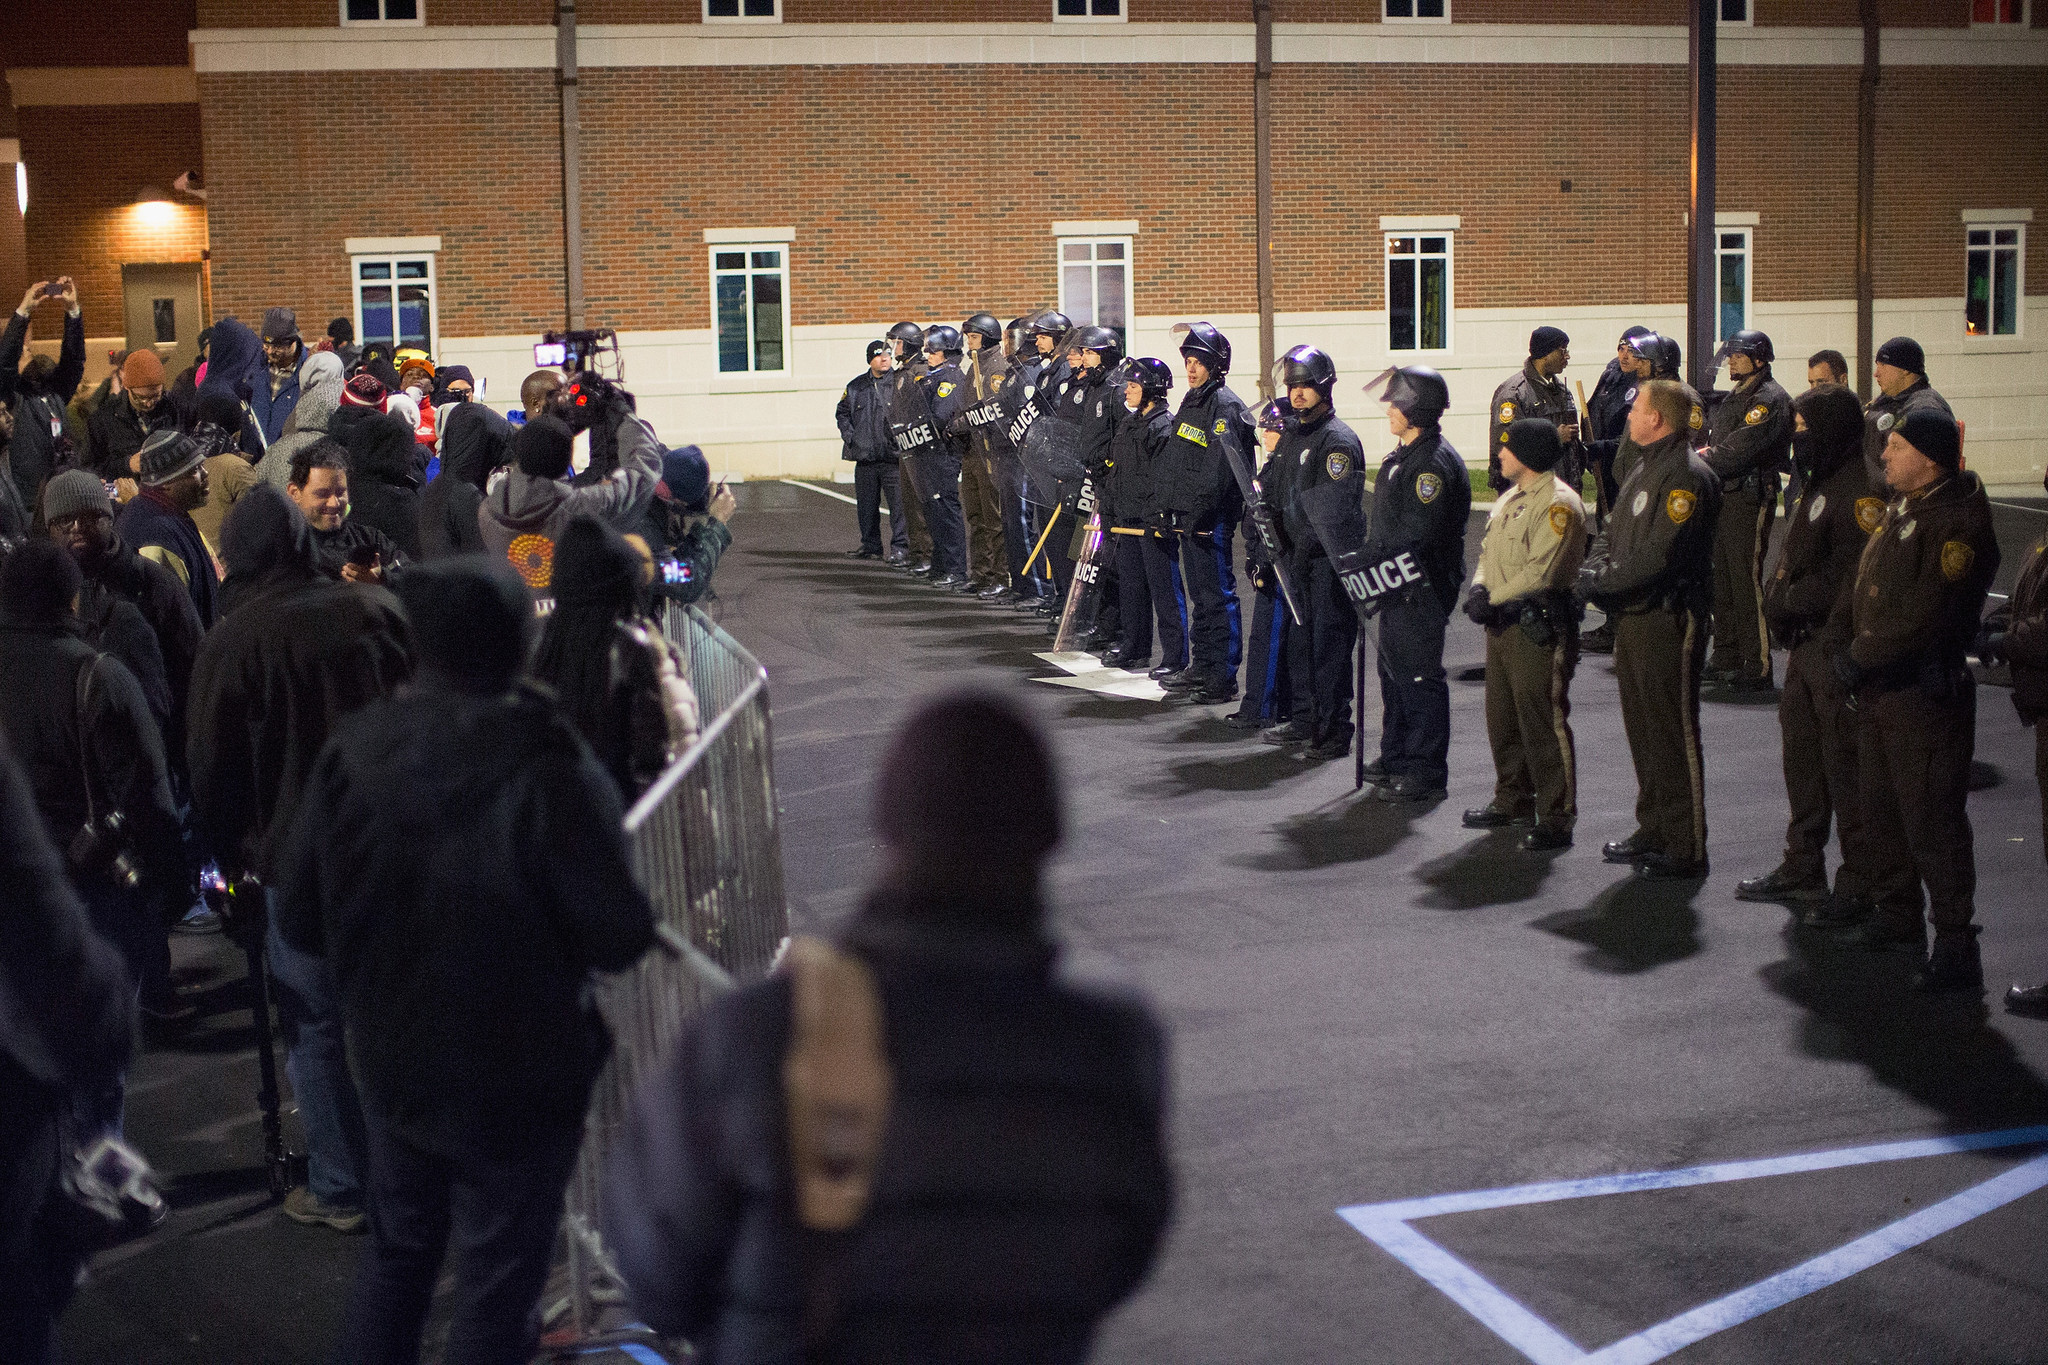 Grand jury decision on Ferguson shooting to be announced shortly